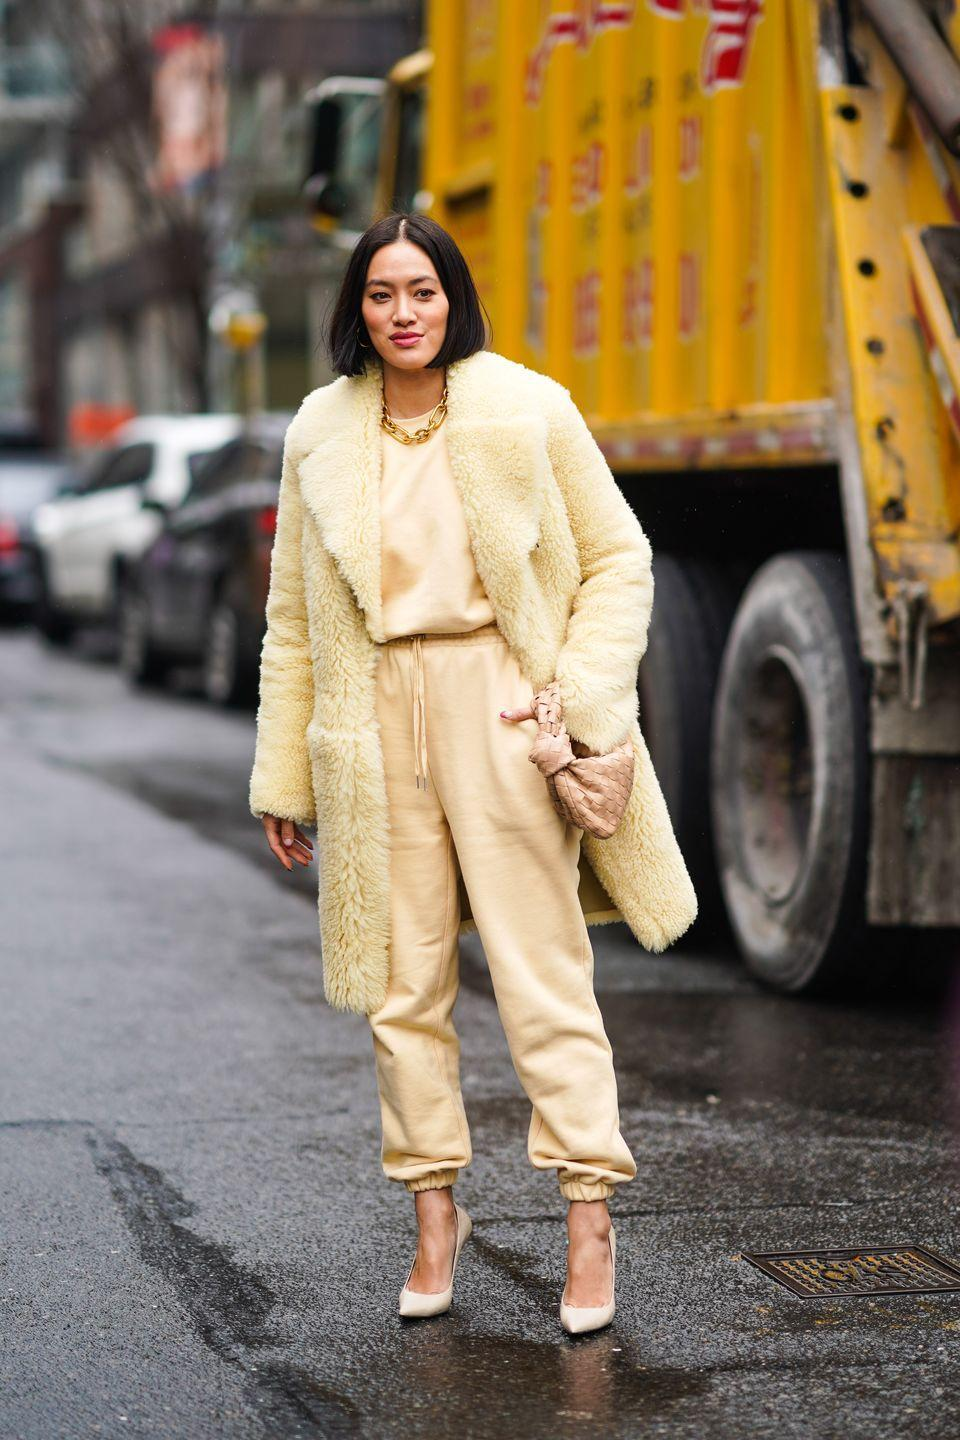 """<p>Butter, but make it fashion. For fall 2021, you'll be wearing this color from your outfit to <a href=""""http://www.seventeen.com/beauty/nails/g19864863/summer-nail-colors/"""" rel=""""nofollow noopener"""" target=""""_blank"""" data-ylk=""""slk:your nails"""" class=""""link rapid-noclick-resp"""">your nails</a> and beyond.<br><br></p>"""